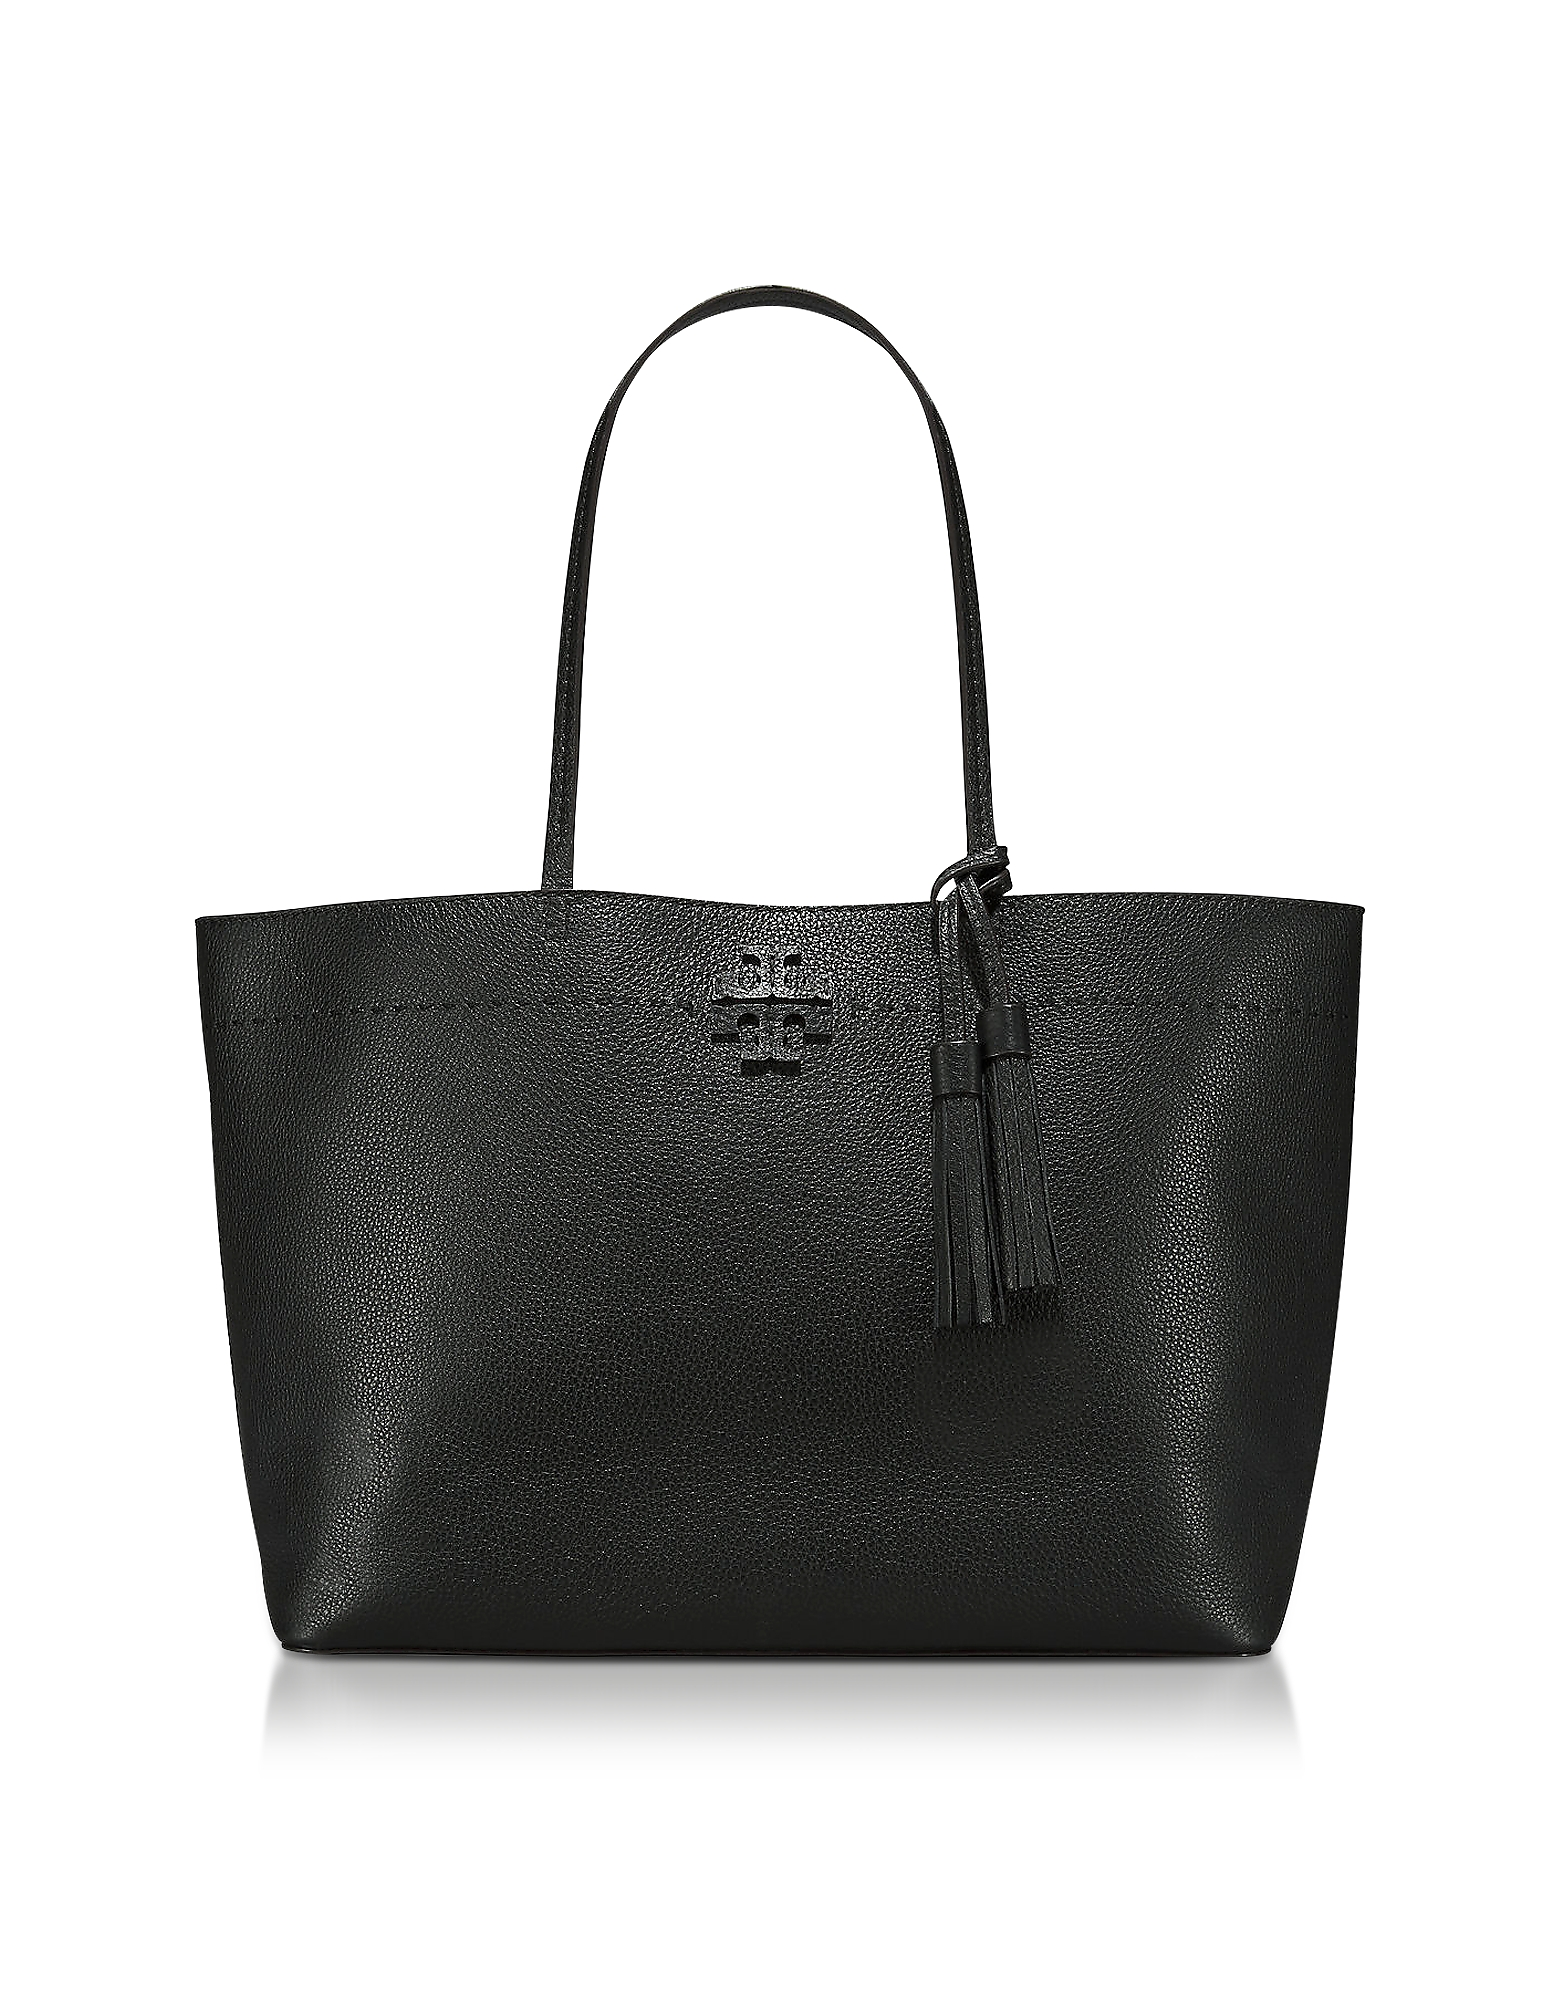 Mcgraw Black Textured Leather Tote Bag